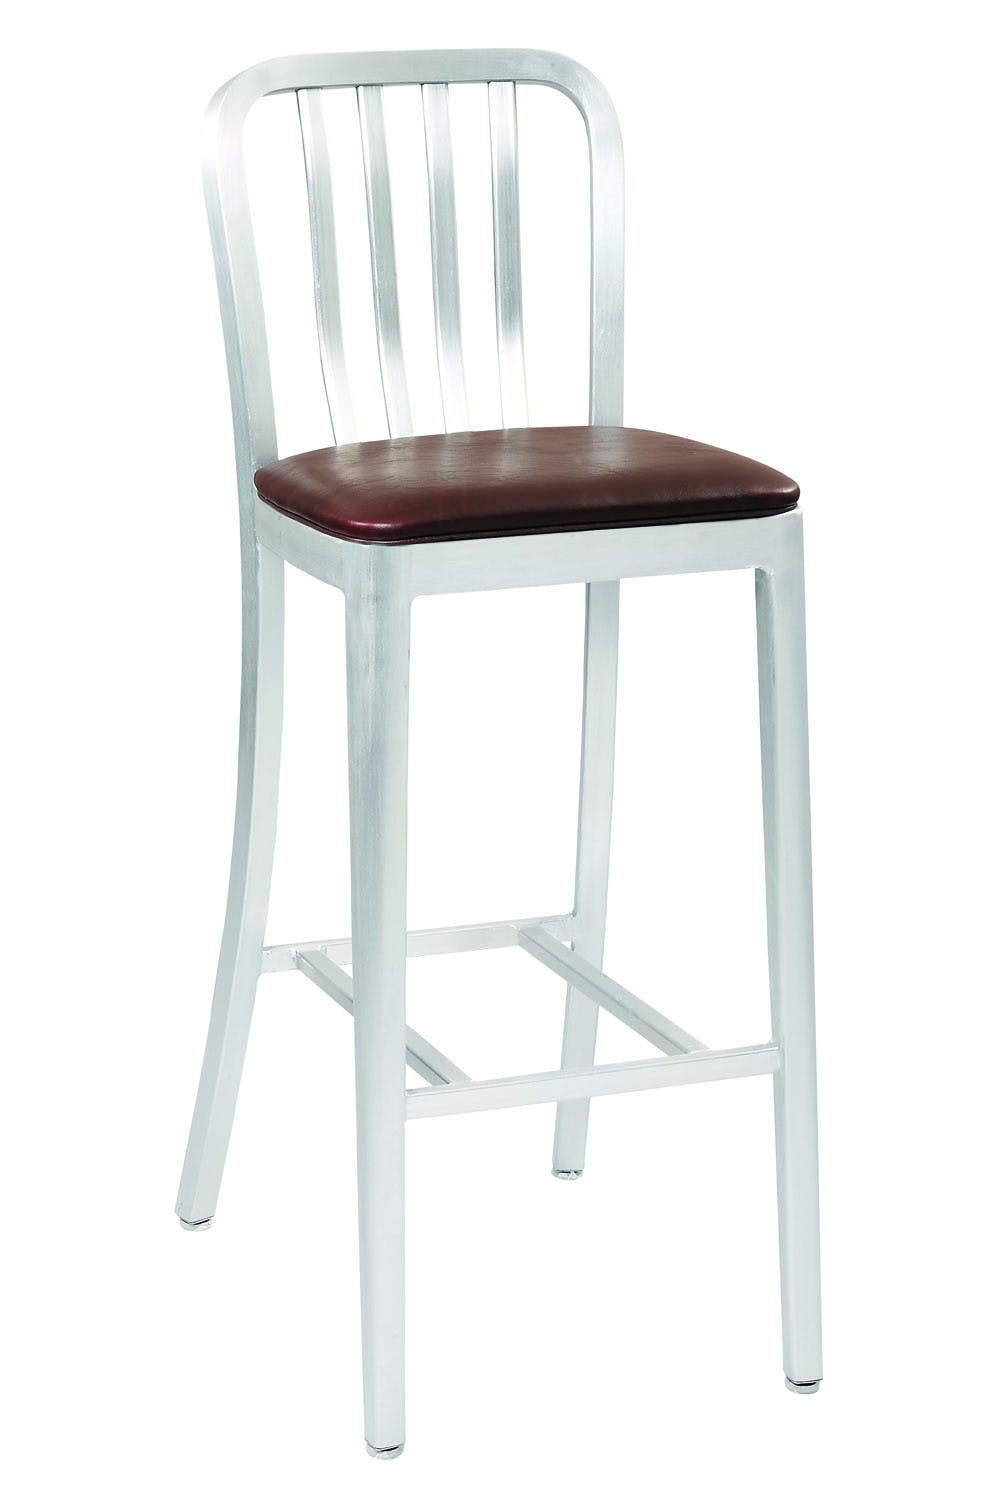 G & A Seating 871PS - Aluminum Classic Bar Stool (12 per Case) Barstool sold by Elite Restaurant Equipment